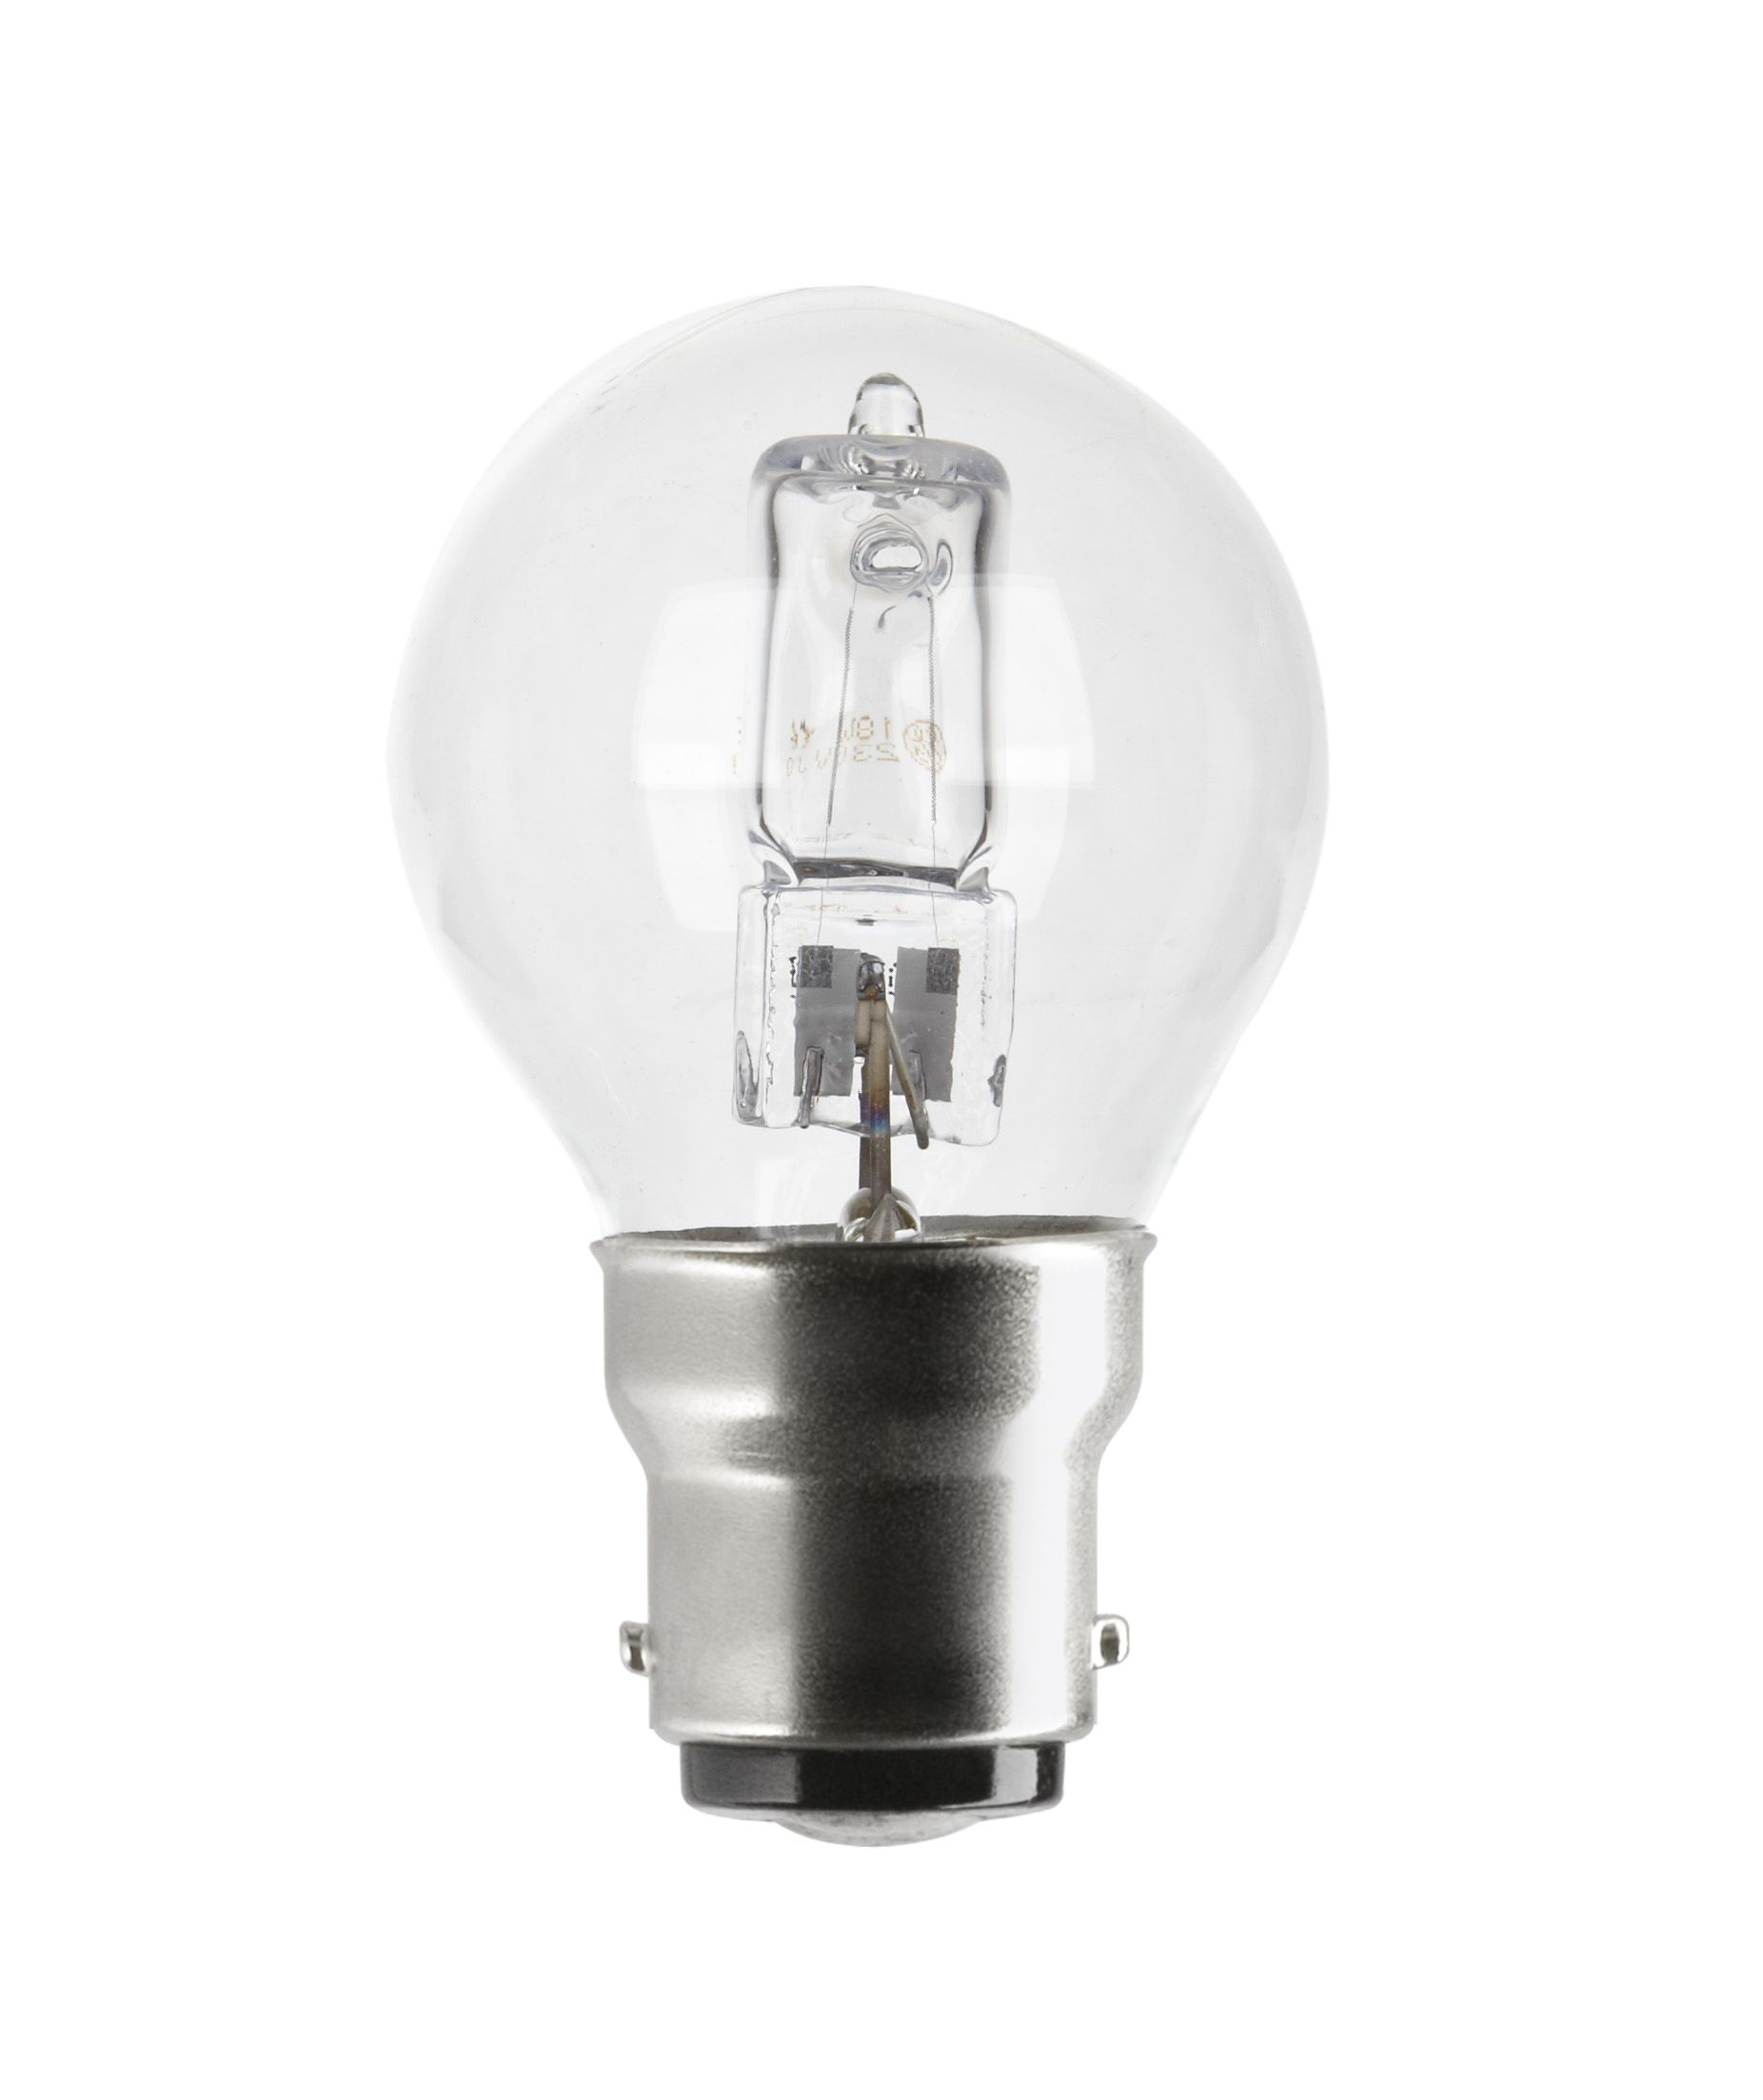 diall small bayonet cap b15 18w halogen eco round light. Black Bedroom Furniture Sets. Home Design Ideas